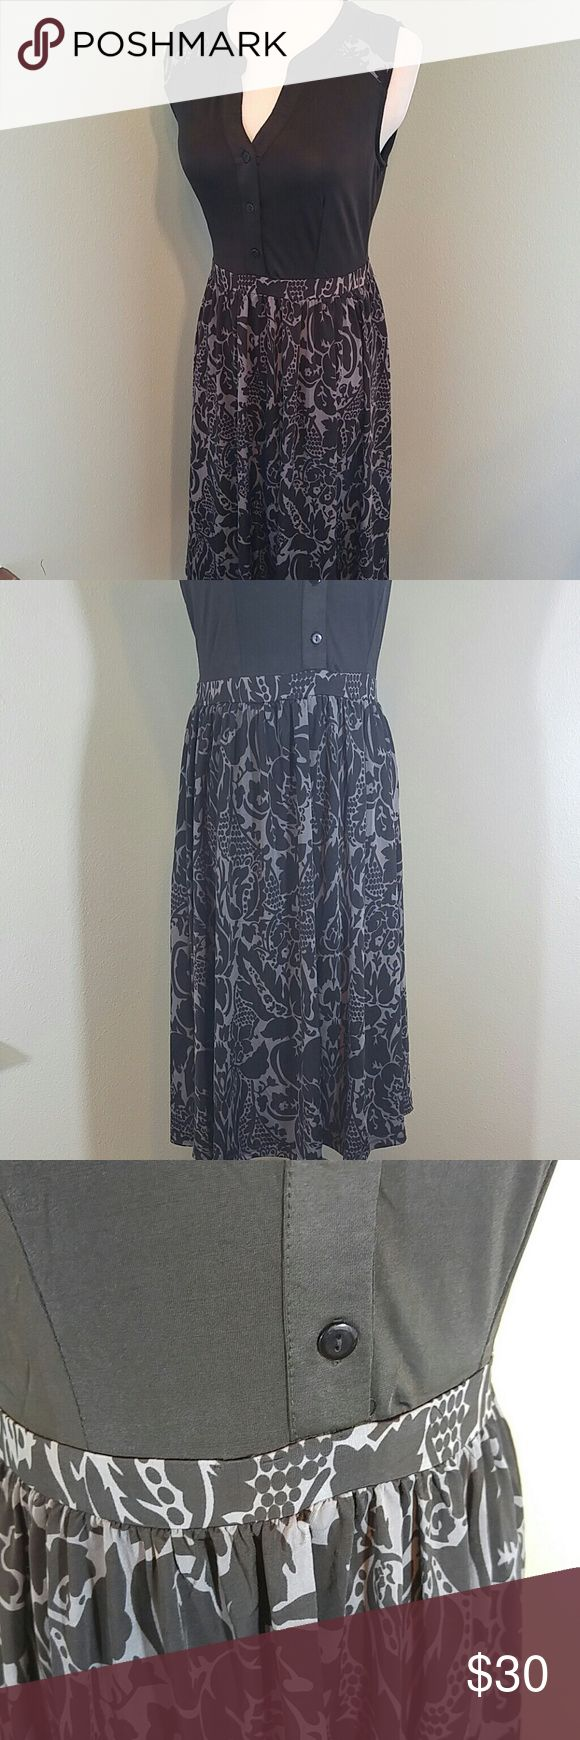 "Black and gray damask midi dress Flowy and comfortable. NWT! Polyester, spandex. 17.5"" pit to pit ,15"" across waist before stretch. 36"" length. reborn Dresses Midi"